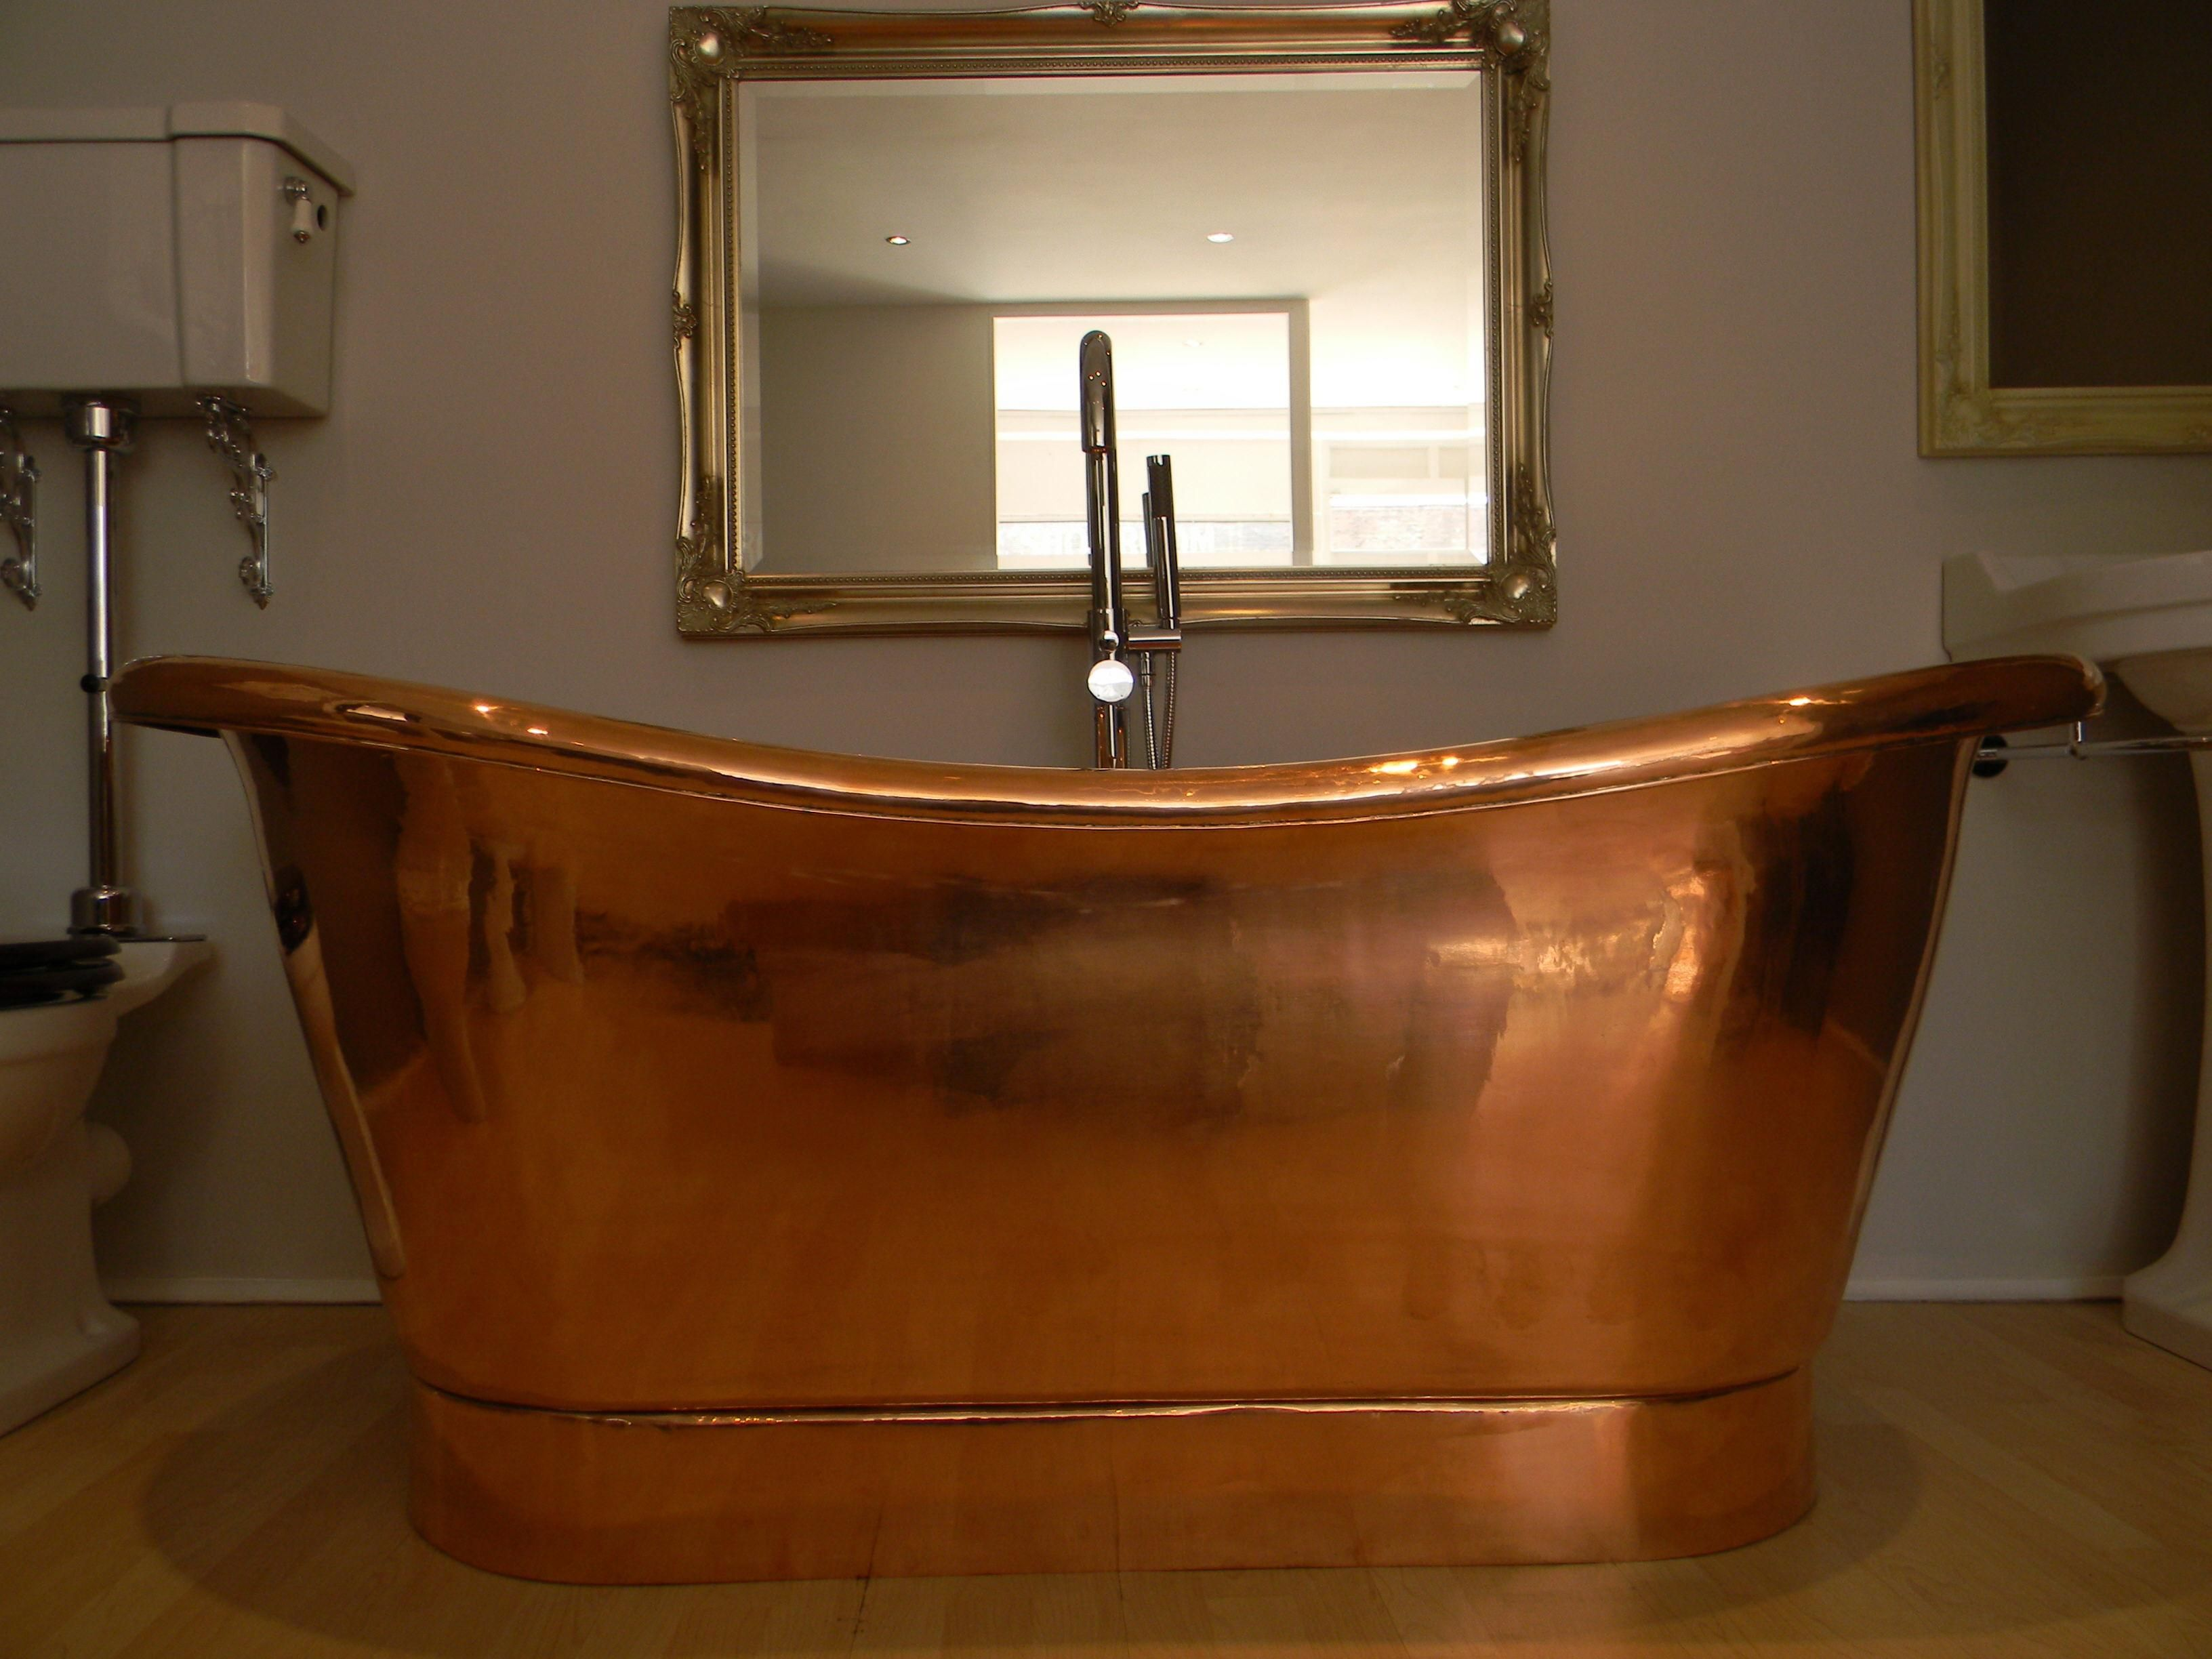 A Copper Bathtub Can Become The Most Striking Piece Of Your Home